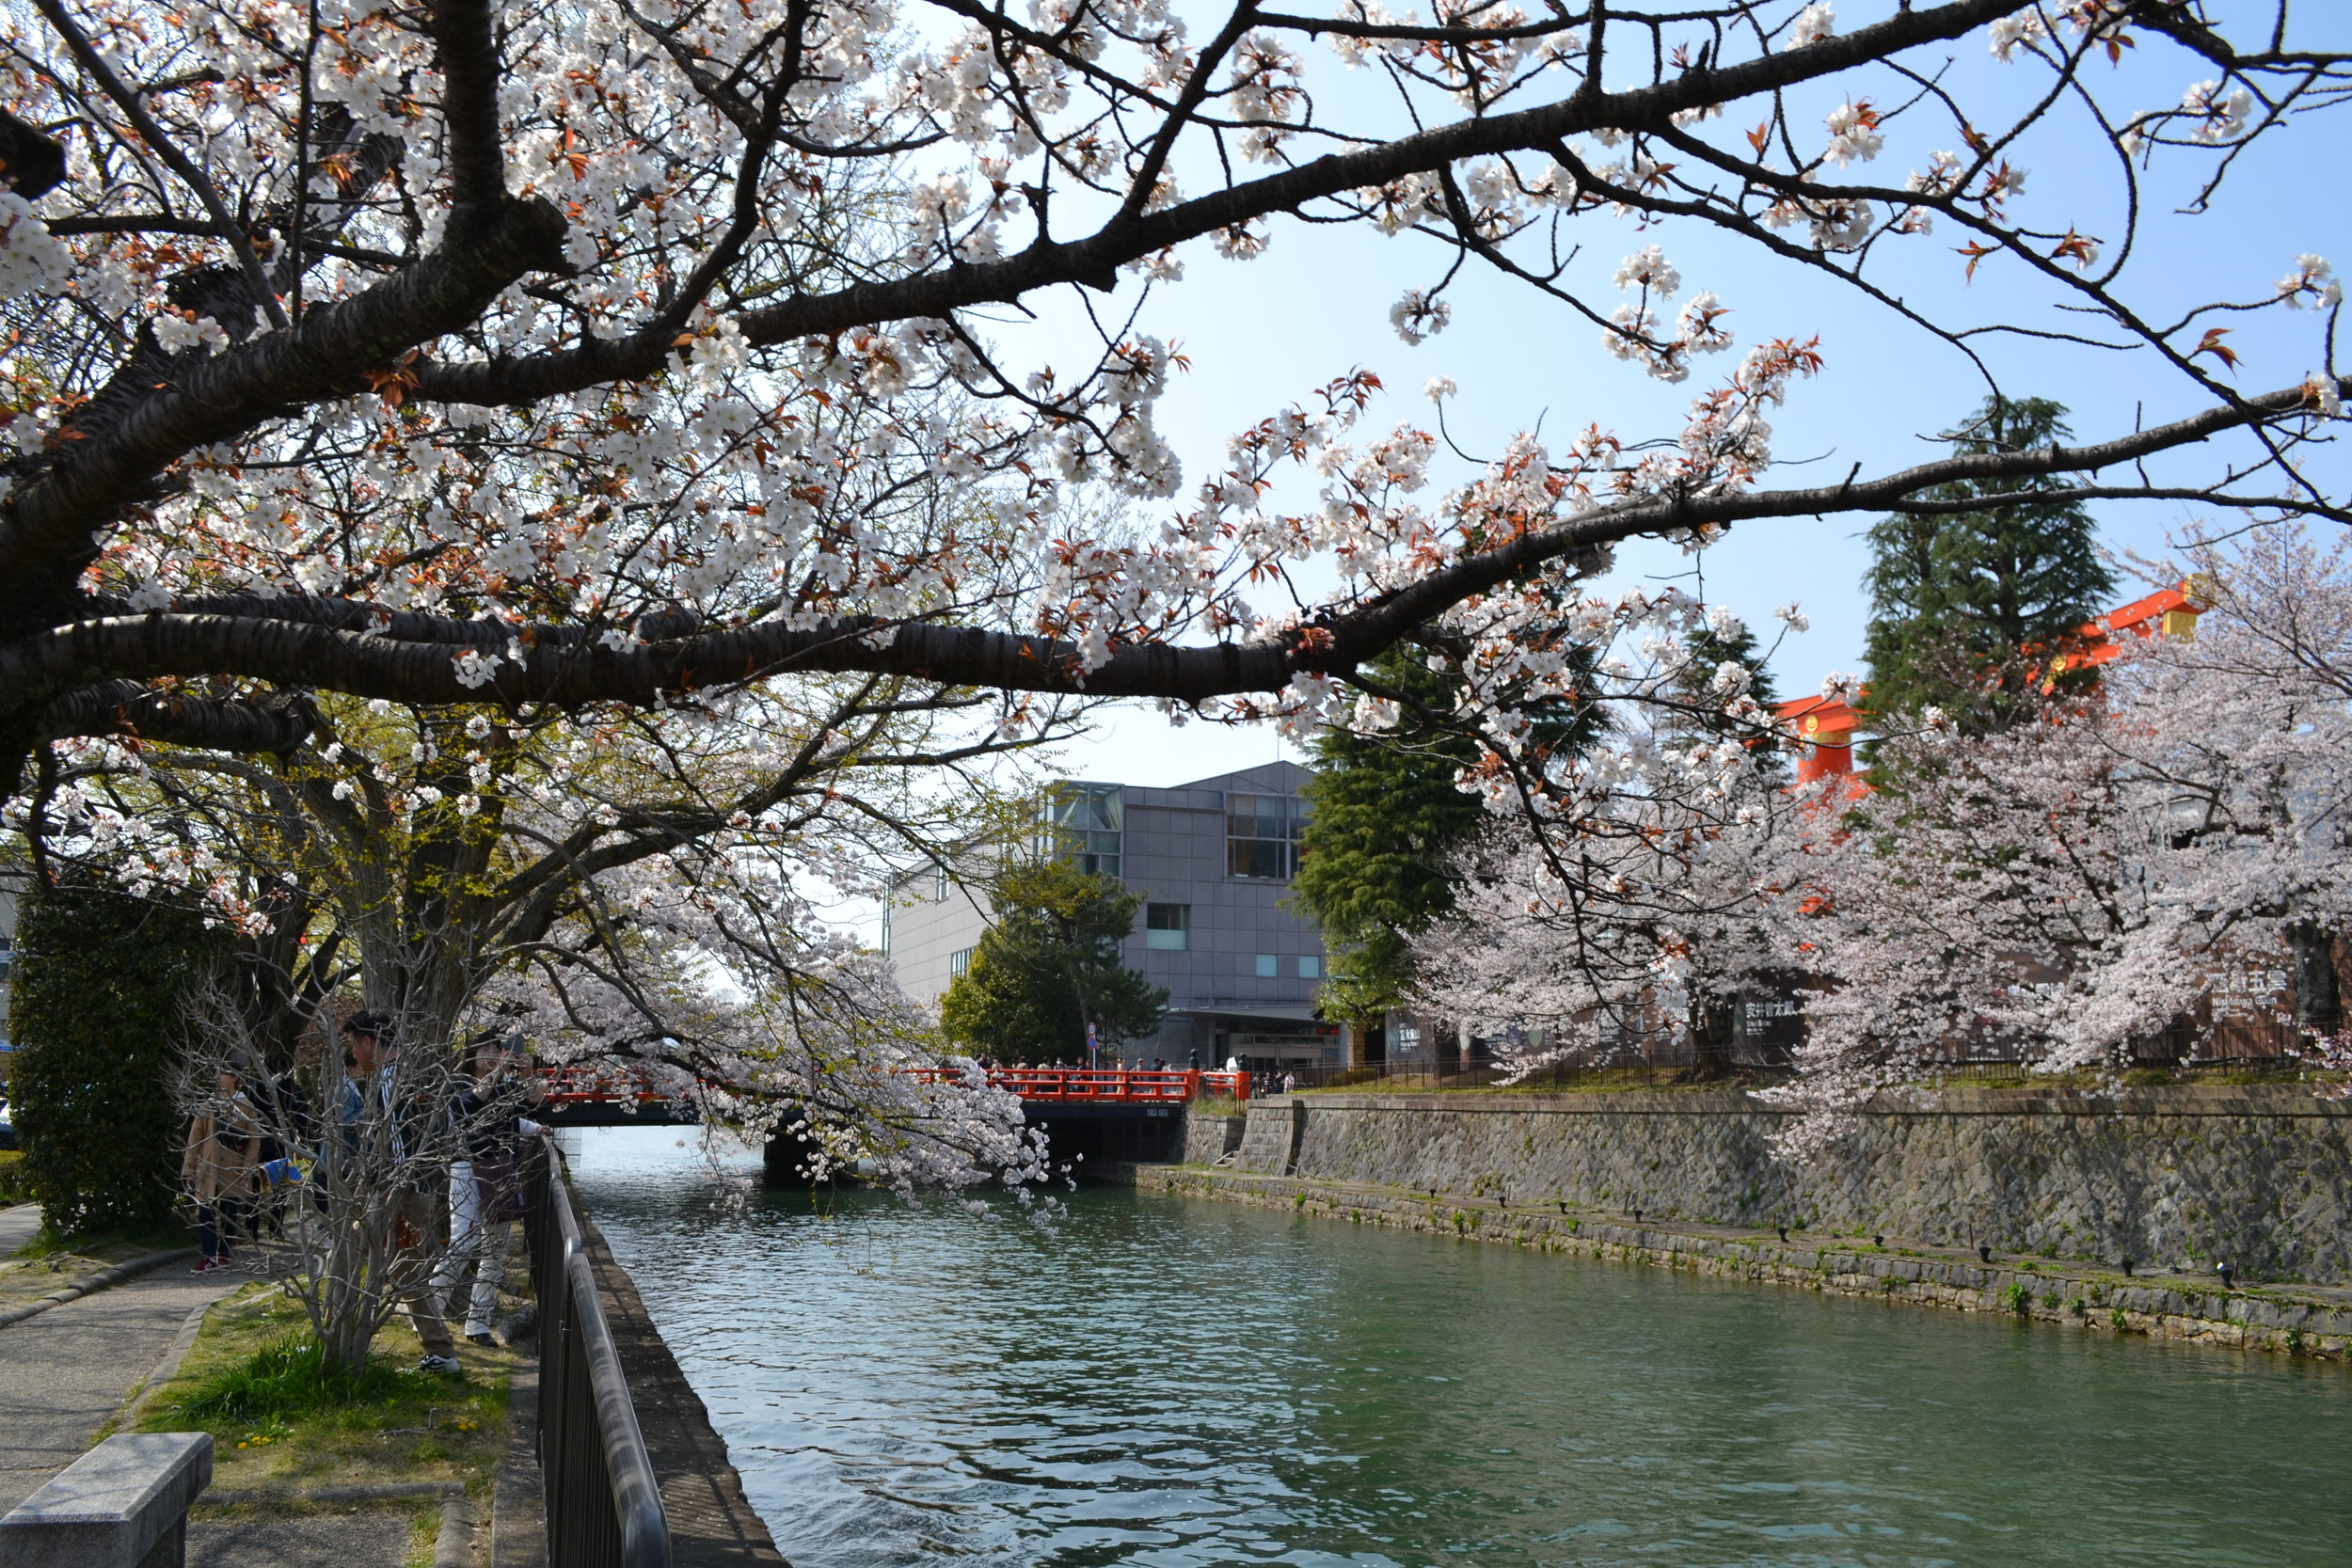 The closer you get to Heian Shrine, the more likely you can see the red  tori . I liked being able to see the gate with a view of the blue canal water and cherry blossoms.